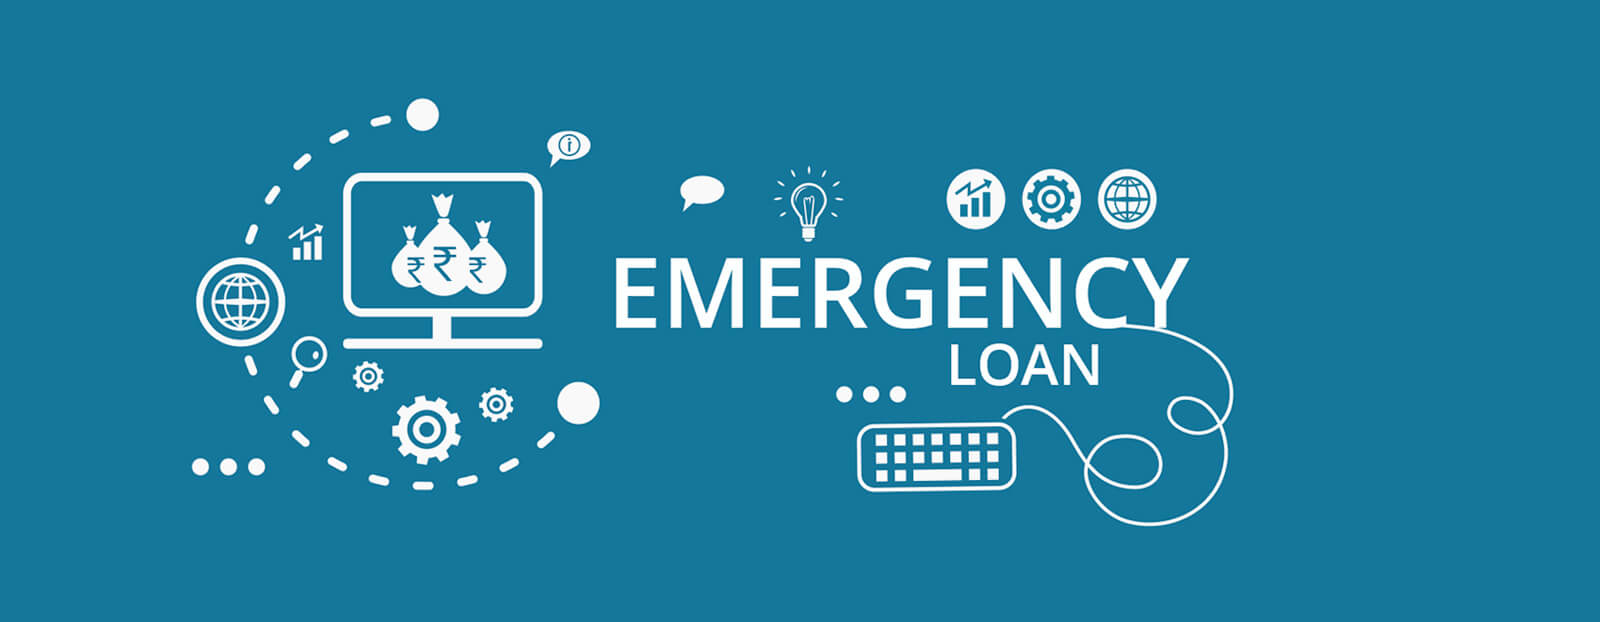 Emergency Loan for Small Businesses